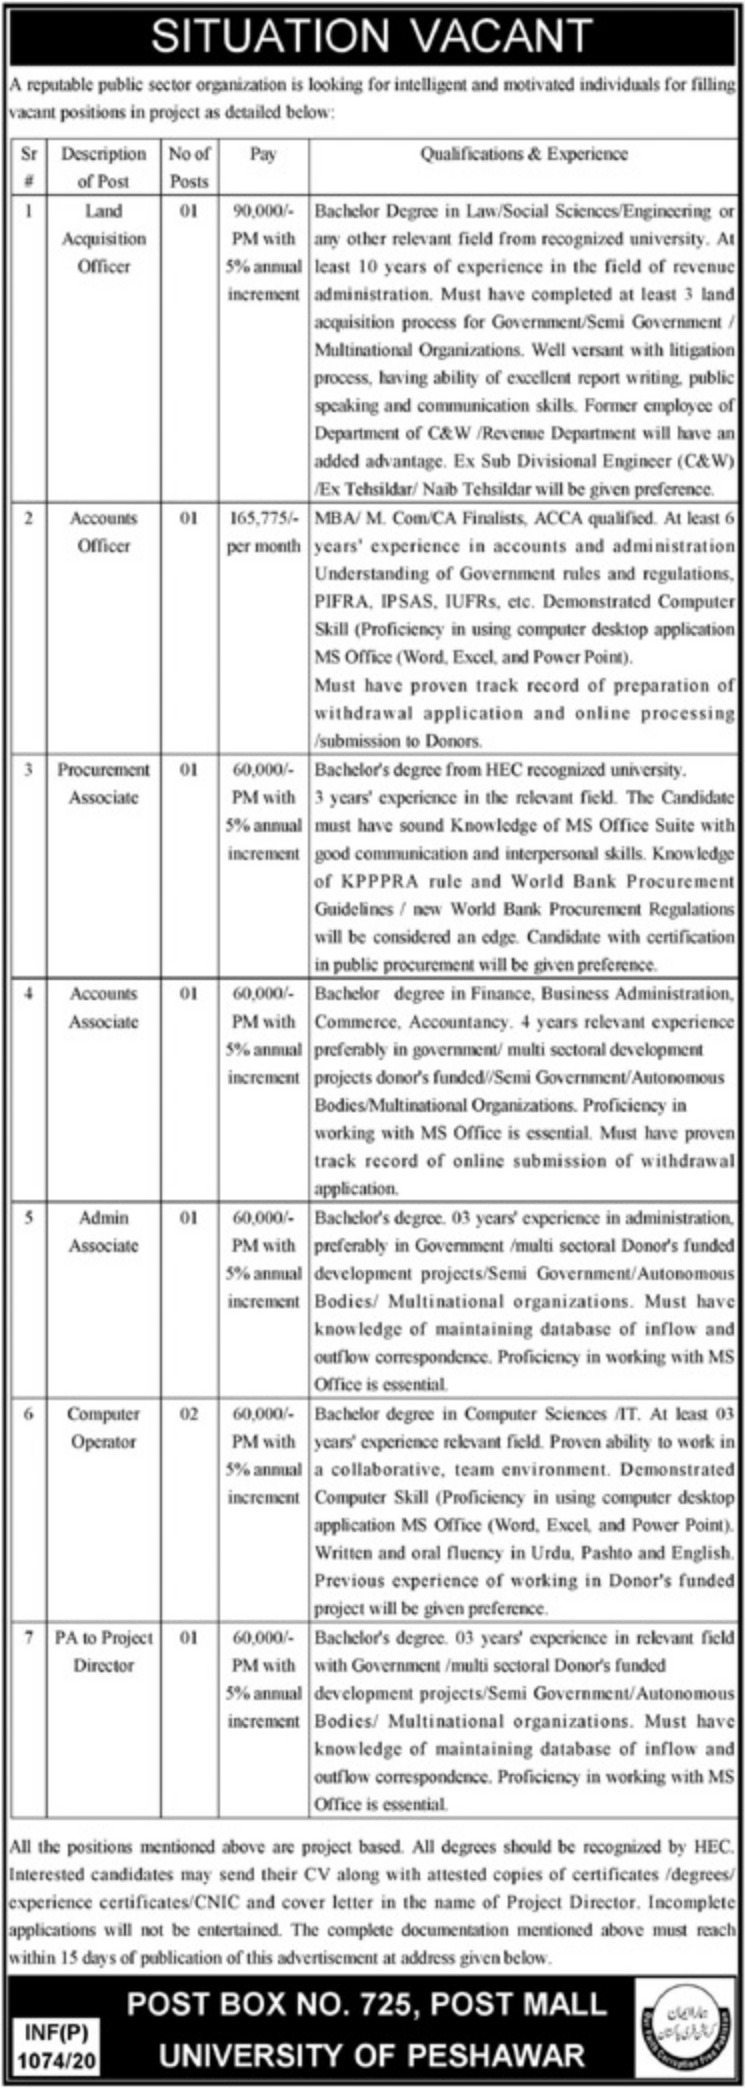 Public Sector Organization Jobs 2020 P.O.Box 725 Peshawar